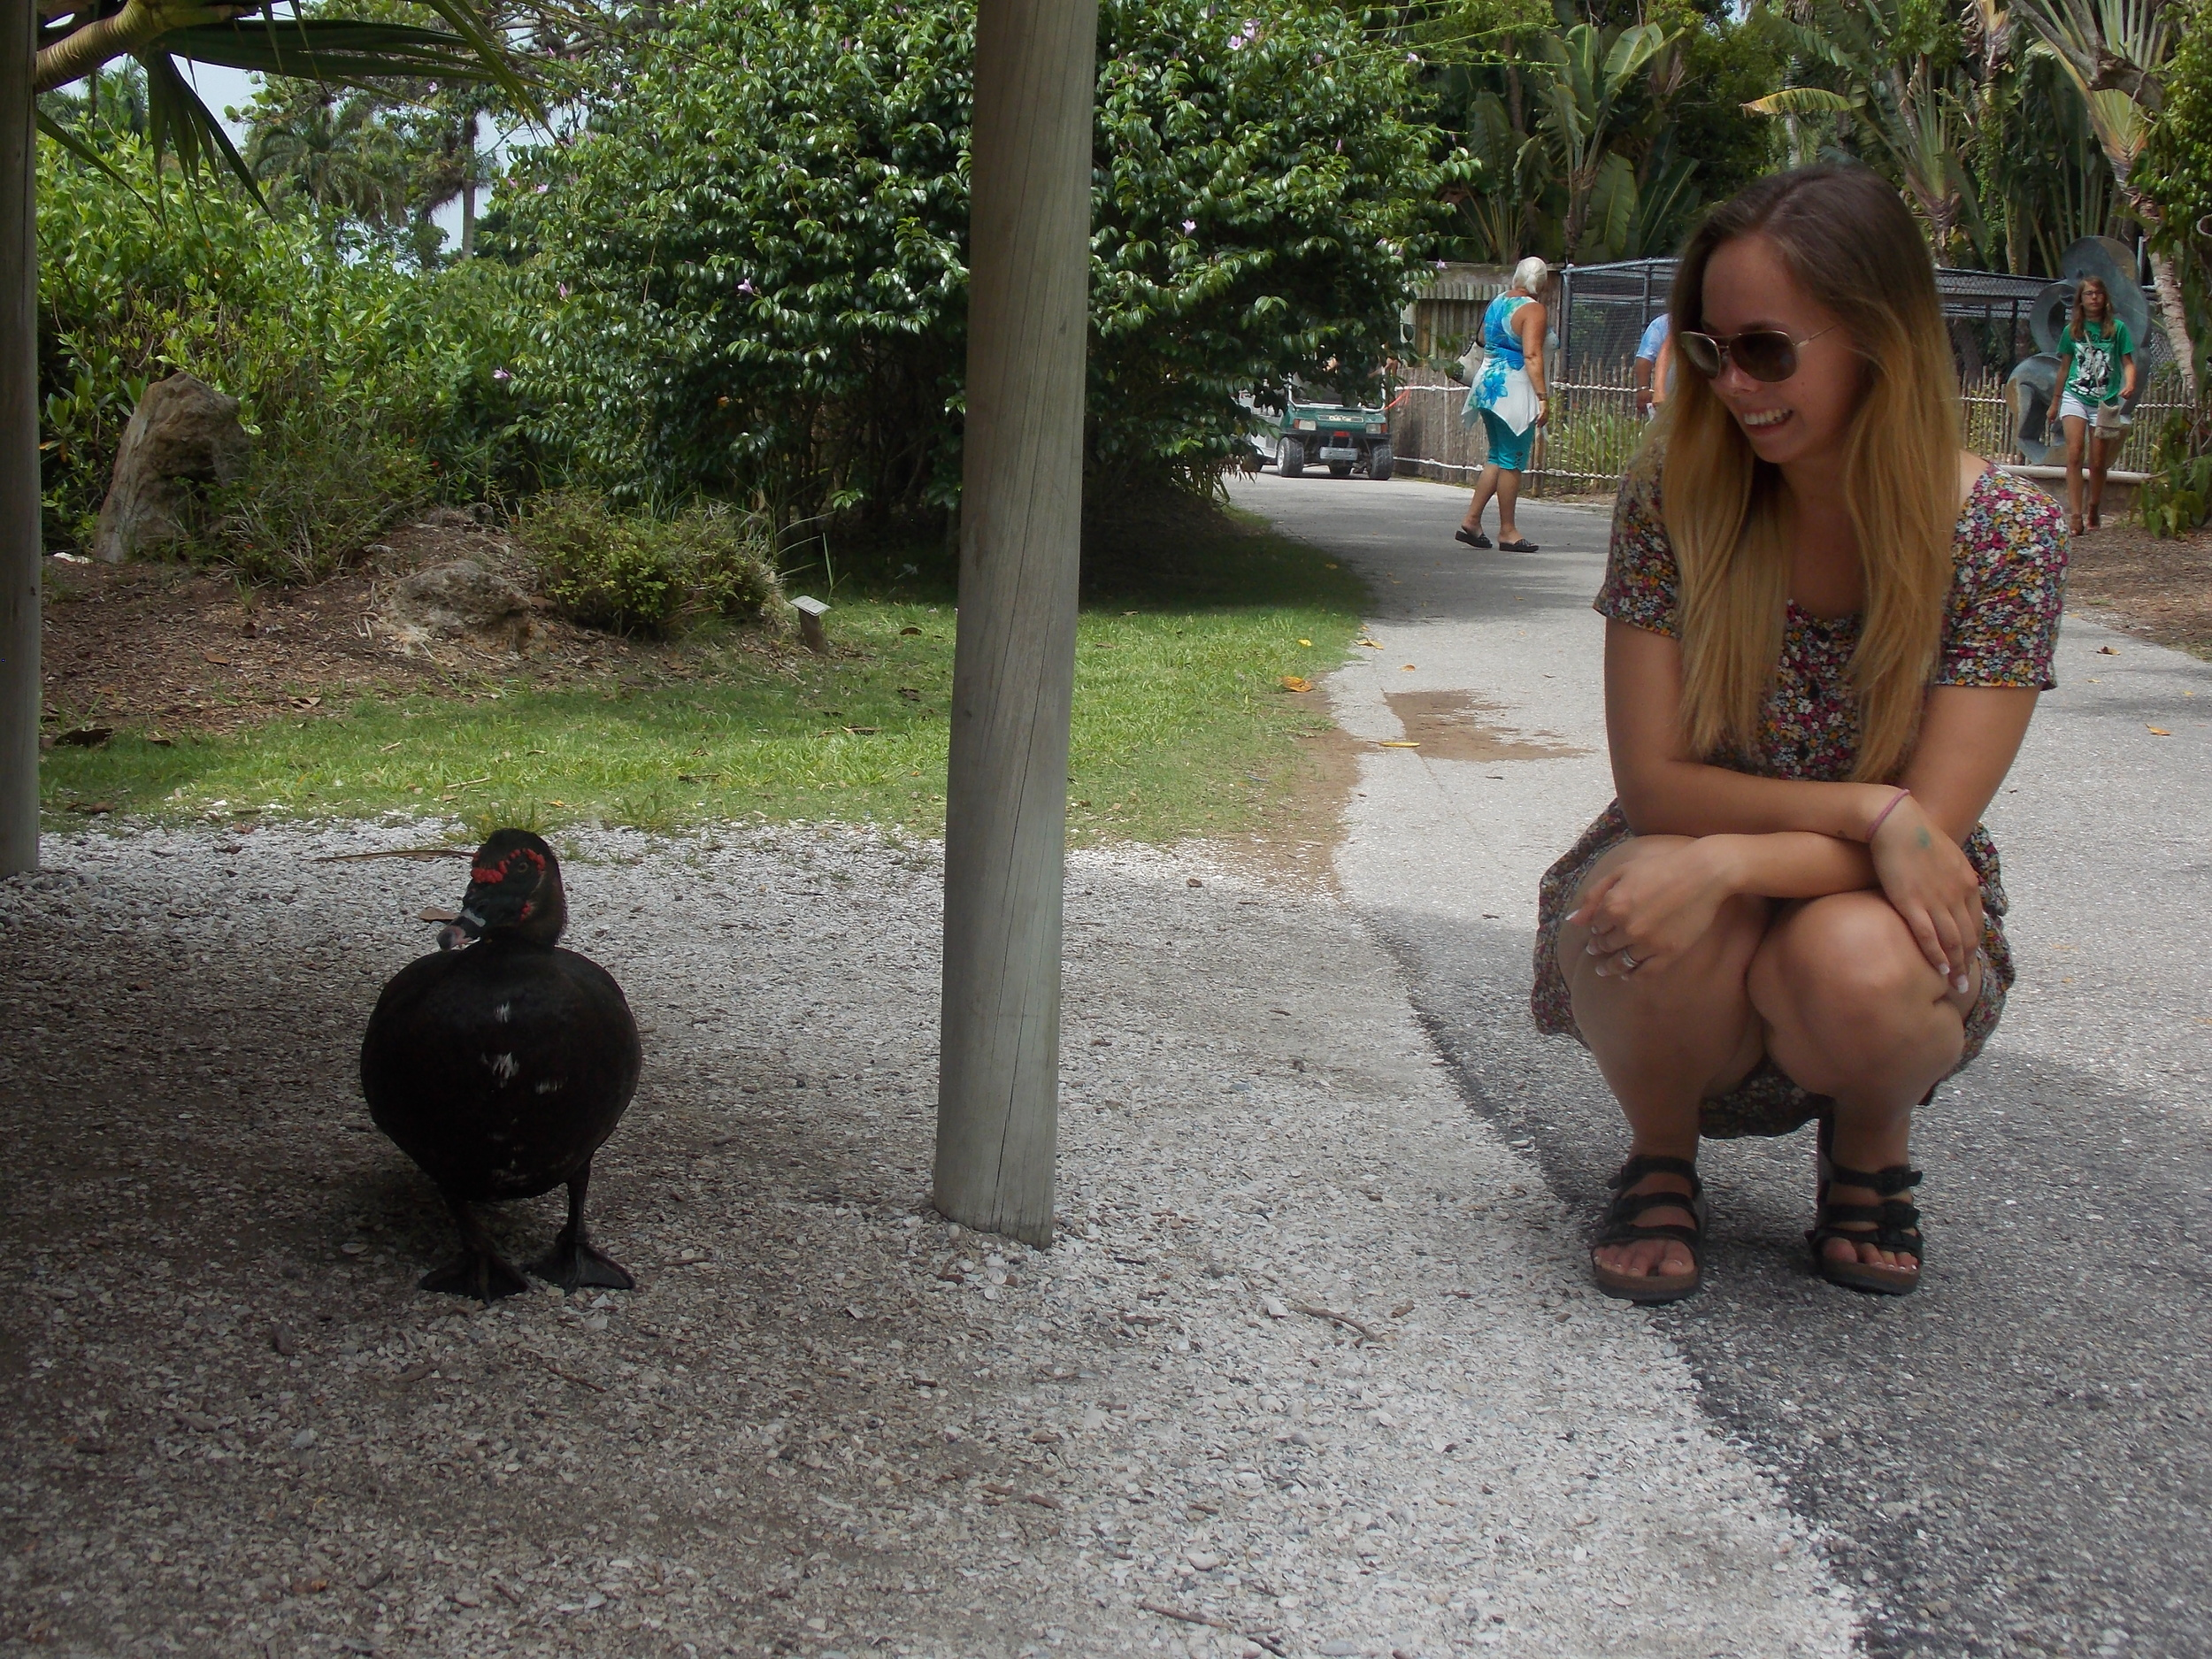 These ducks got SO close if you had food anywhere near you. I wanted to snuggle this little munchkin so bad!